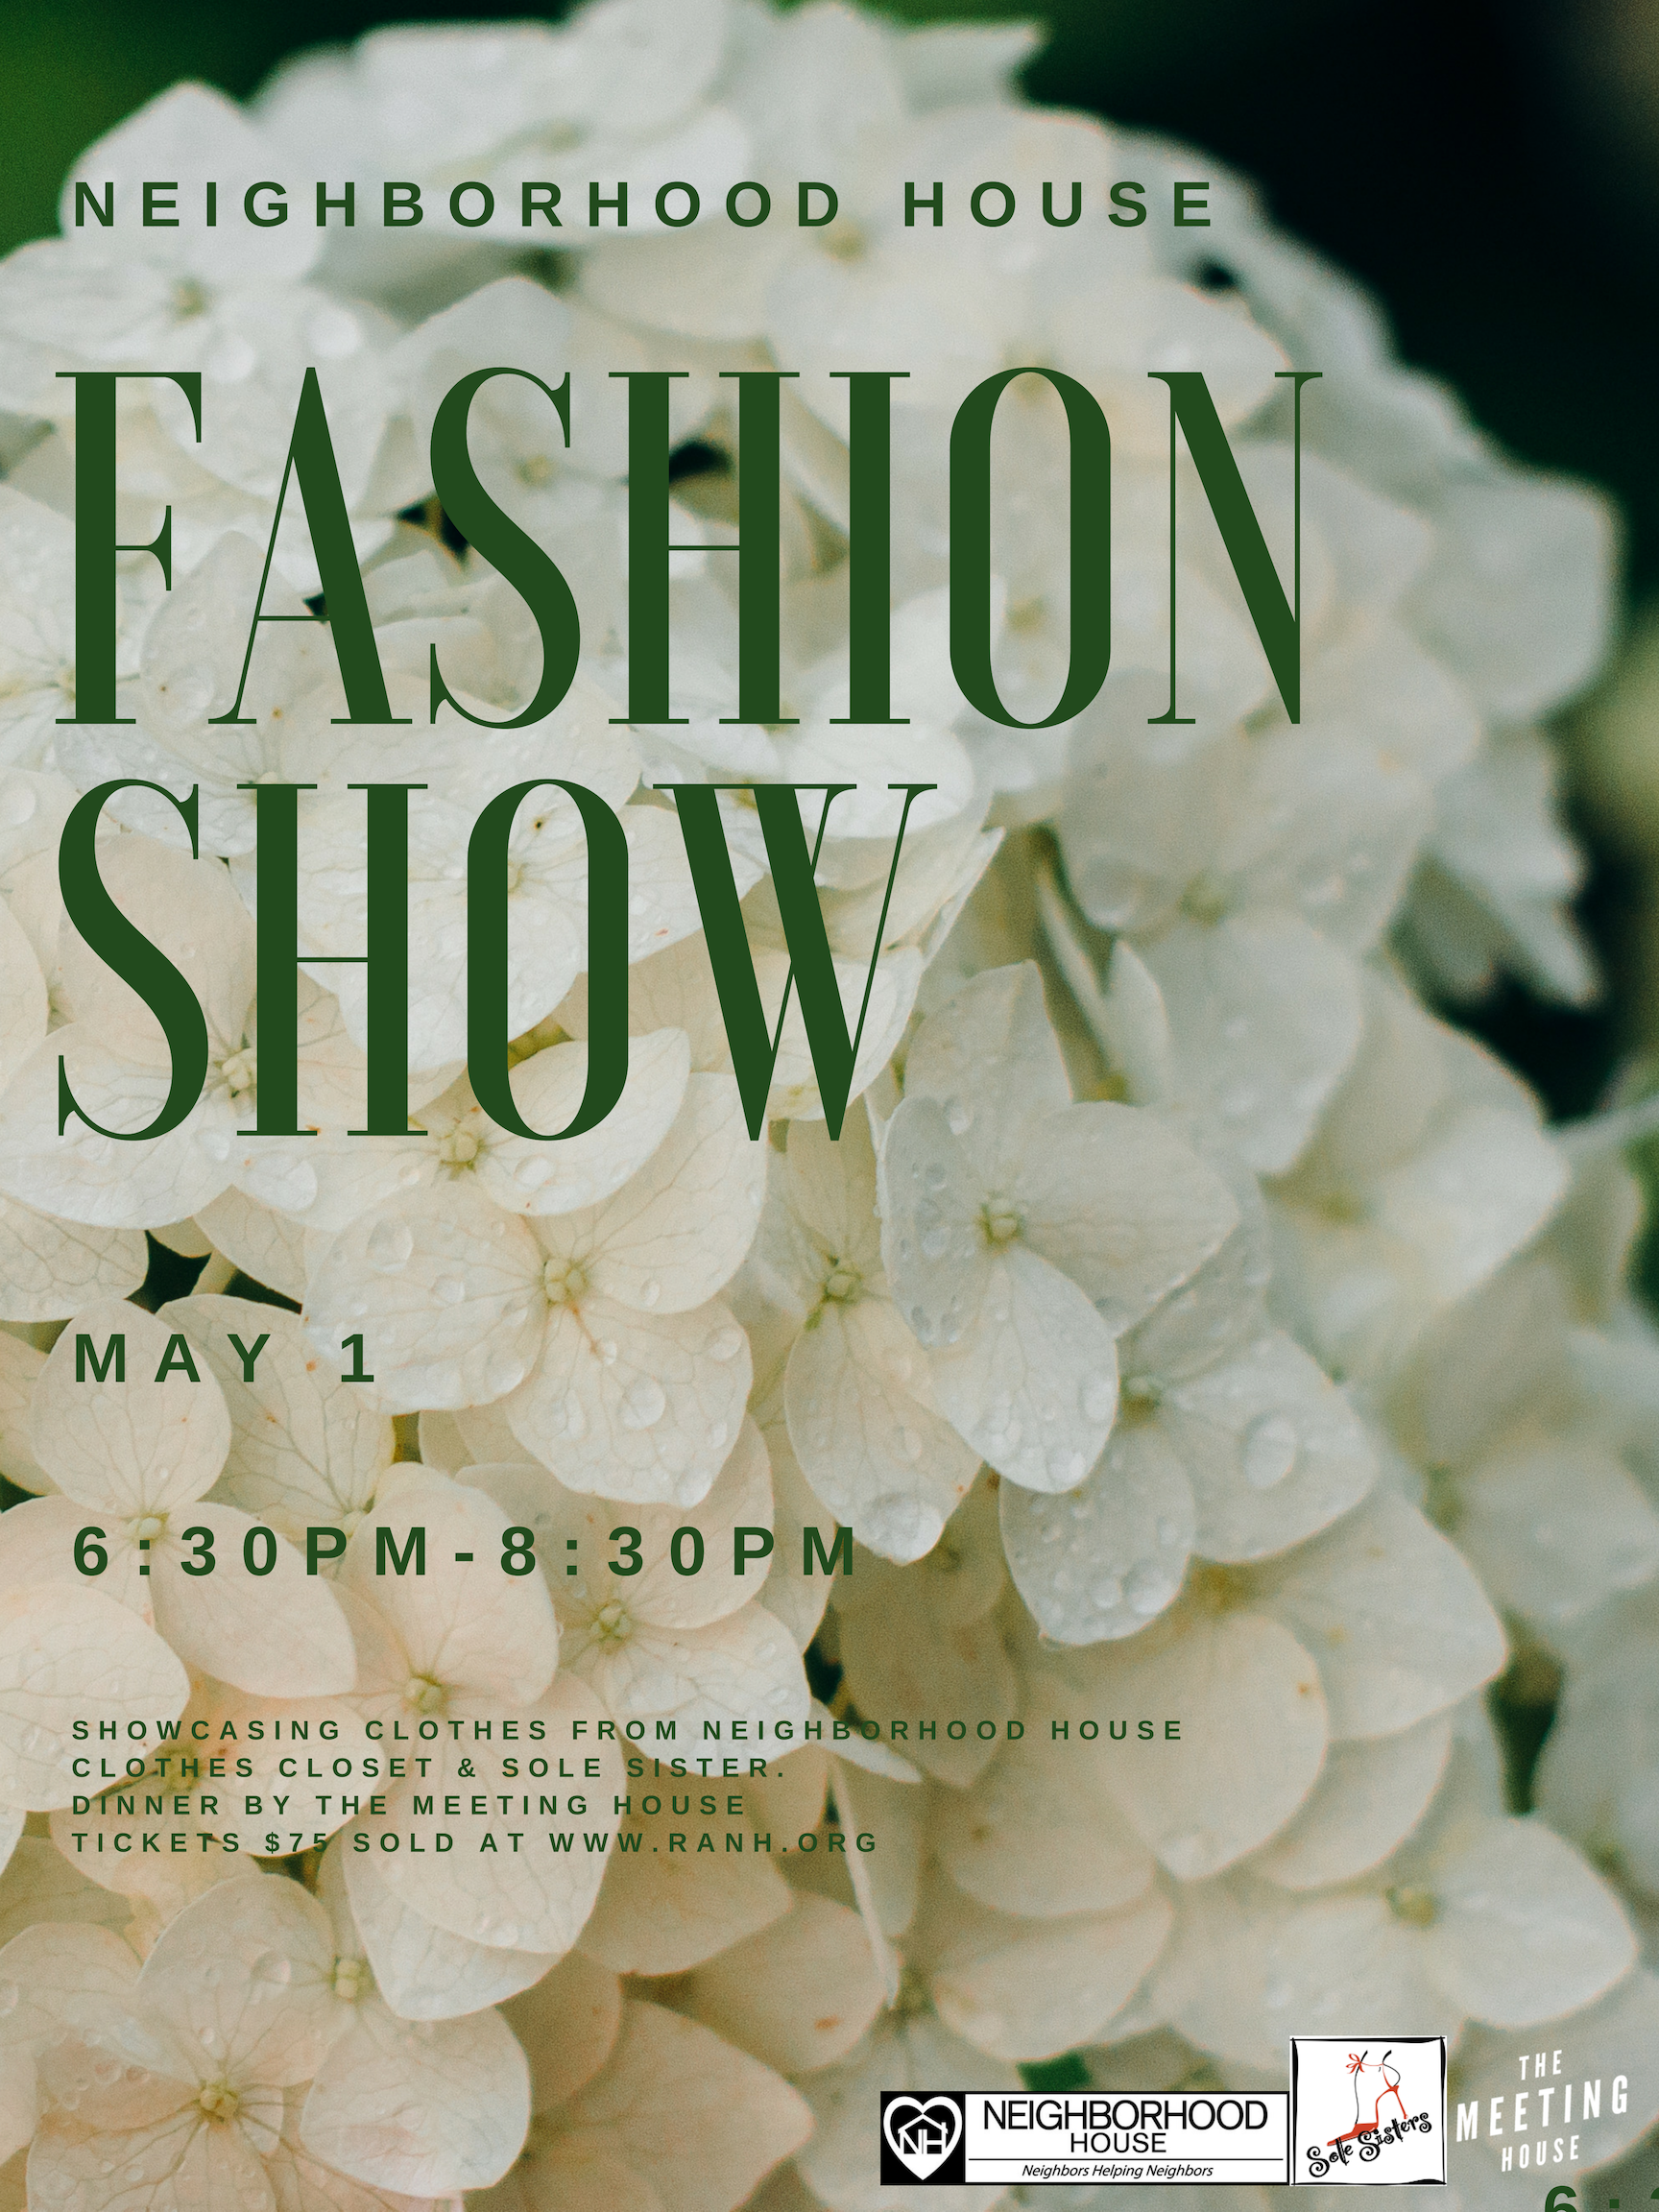 Mark your calendars for May 1st. The Neighborhood House will be hosting it's 2nd Fashion Show from 6:30-8:30 PM. Our models will be wearing clothing from our very own Neighborhood House Clothes Closet and from Sole Sisters. There will be beauty vendors, an open bar, and a delicious dinner provided by The Meeting House. Get your tickets now!  Tickets are sold out!   Sponsored by: Sole Sisters, The Meeting House, Kruk Properties, Royal Park Hotel, Diamond Vault of Troy, Runway Salon & Spa, Trish McEvoy and Horizon Interior Design